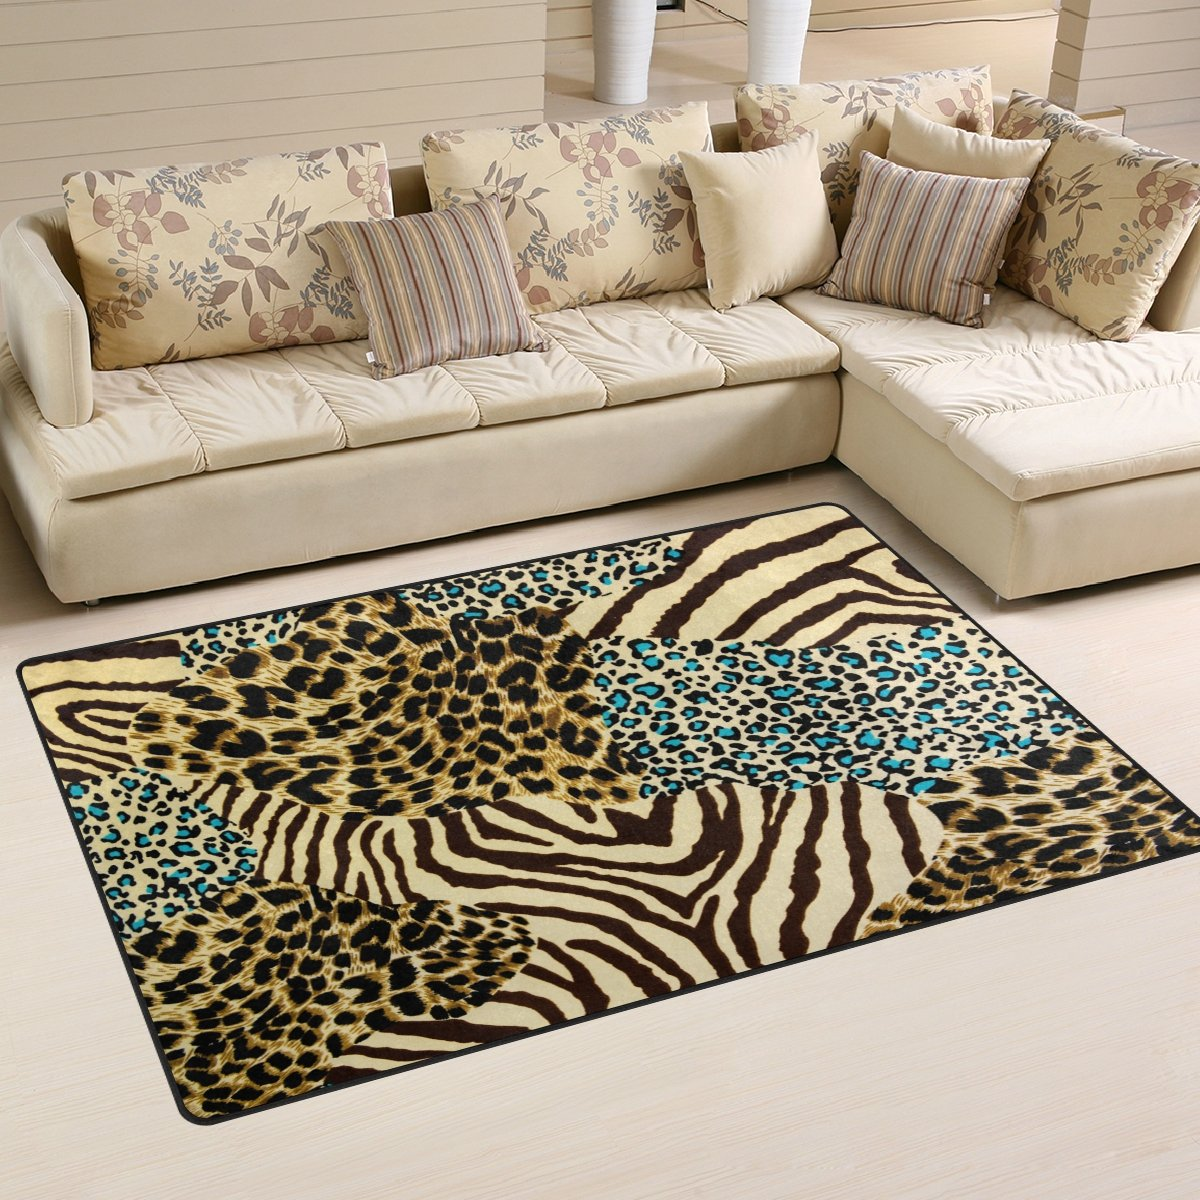 WOZO Animal Zebra Tiger Print Area Rug Rugs Non-Slip Floor Mat Doormats Living Room Bedroom 60 x 39 inches